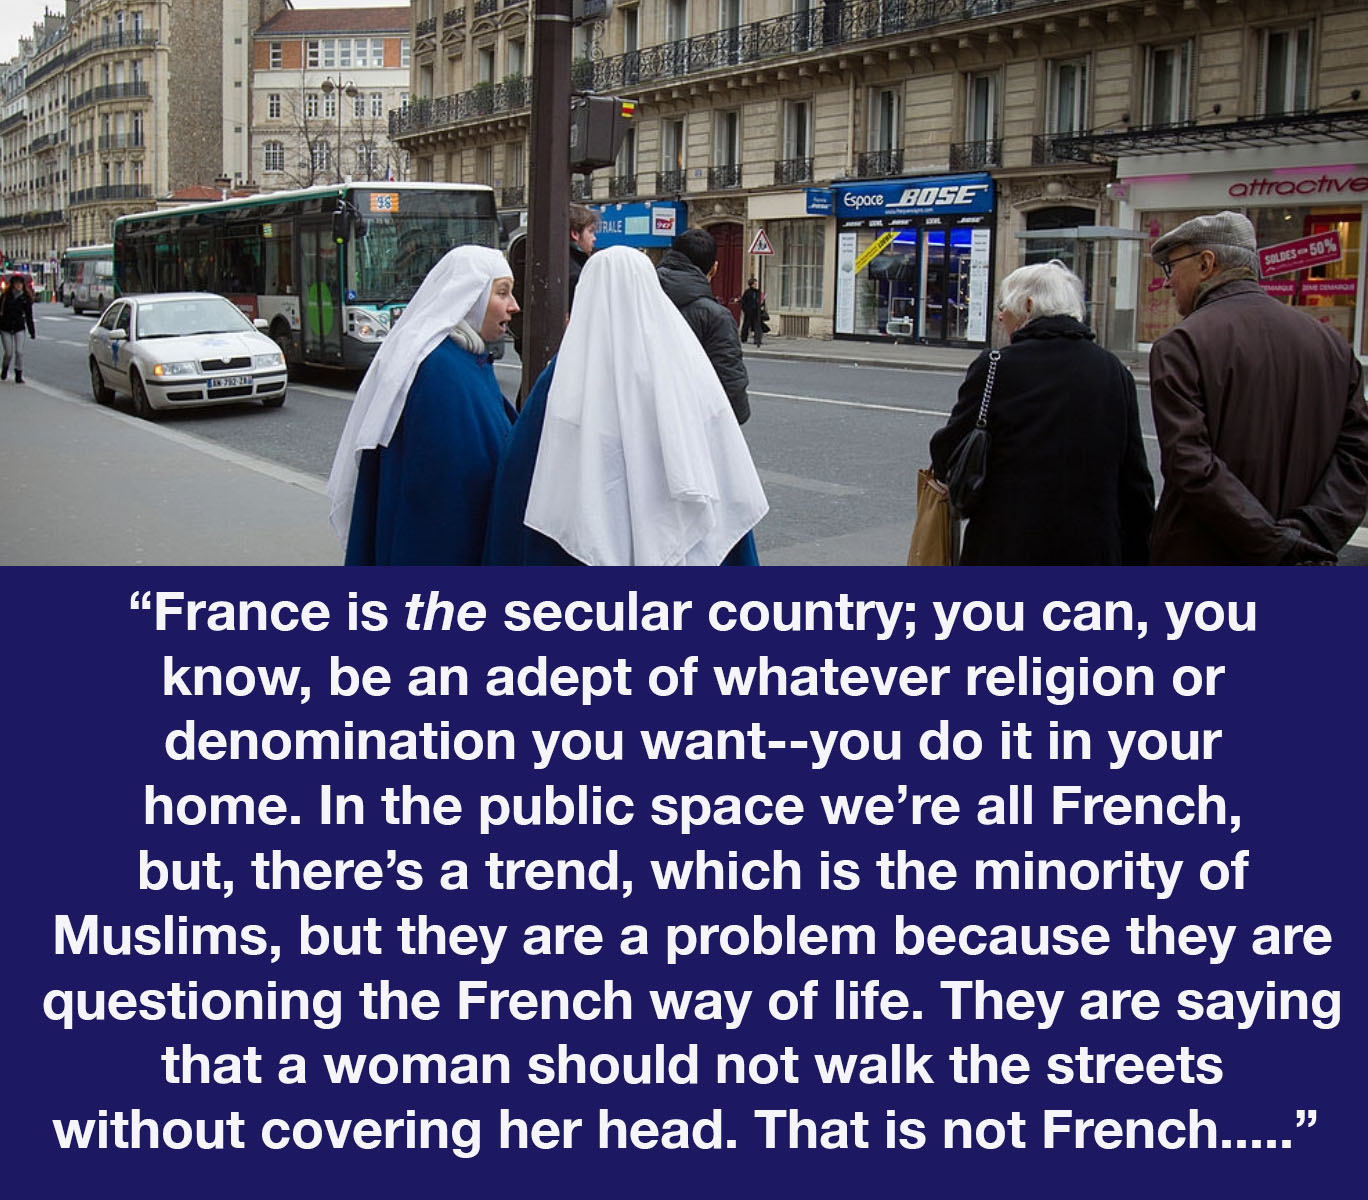 An image of nuns in Paris with a quote